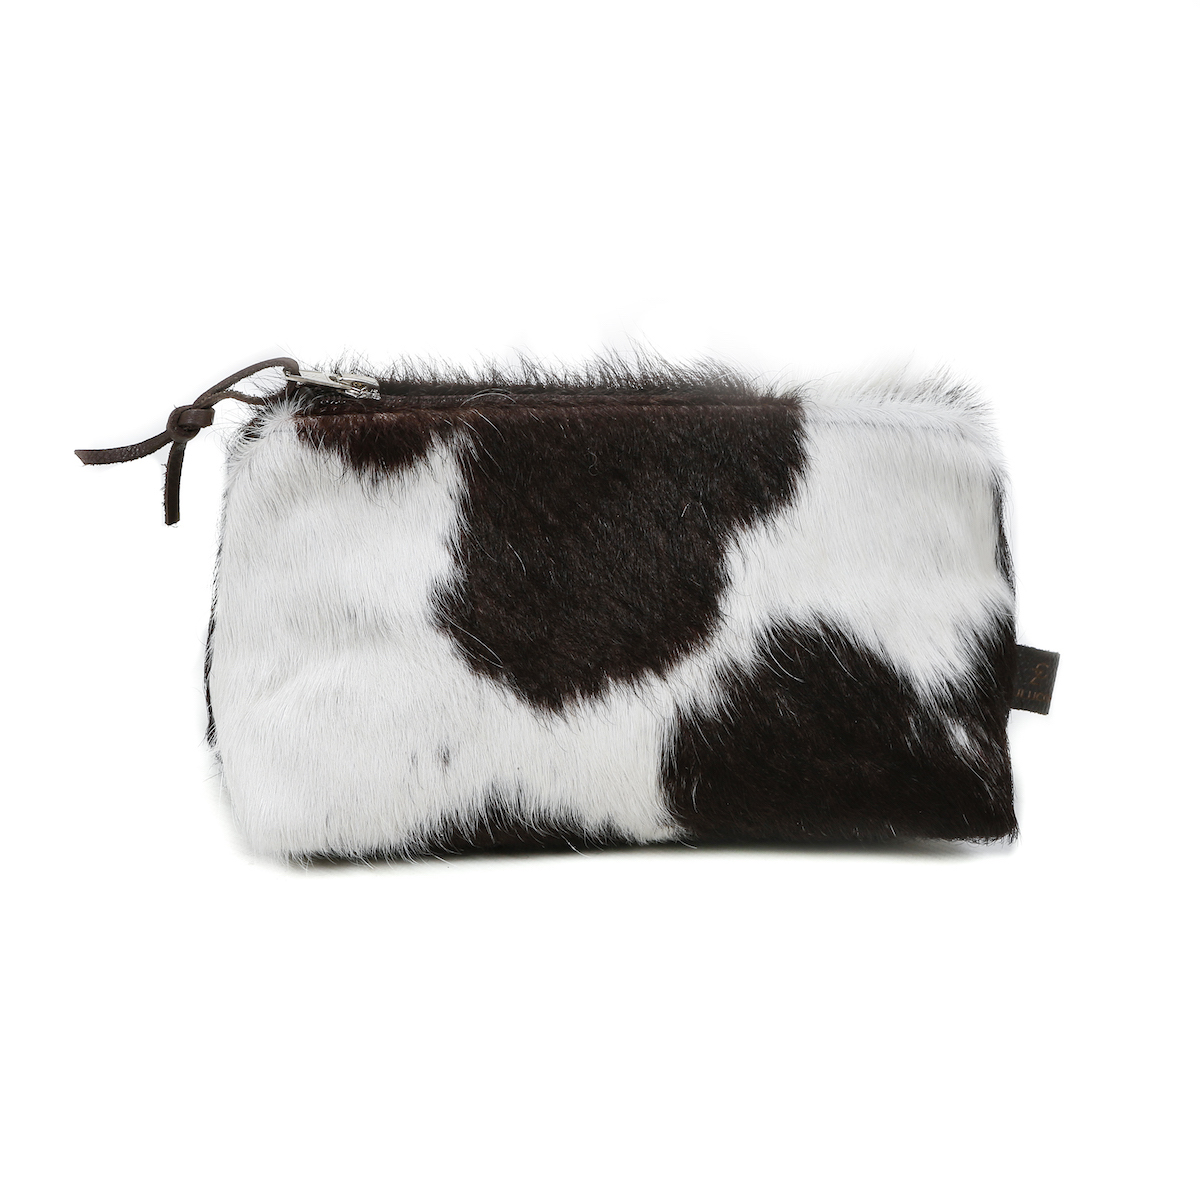 cowhide clutch, cowhide purse, handmade, artisan made, cowhide cosmetic bag, slow fashion, ethical fashion, sustainable fashion, christmas gifts, presents, leather bag